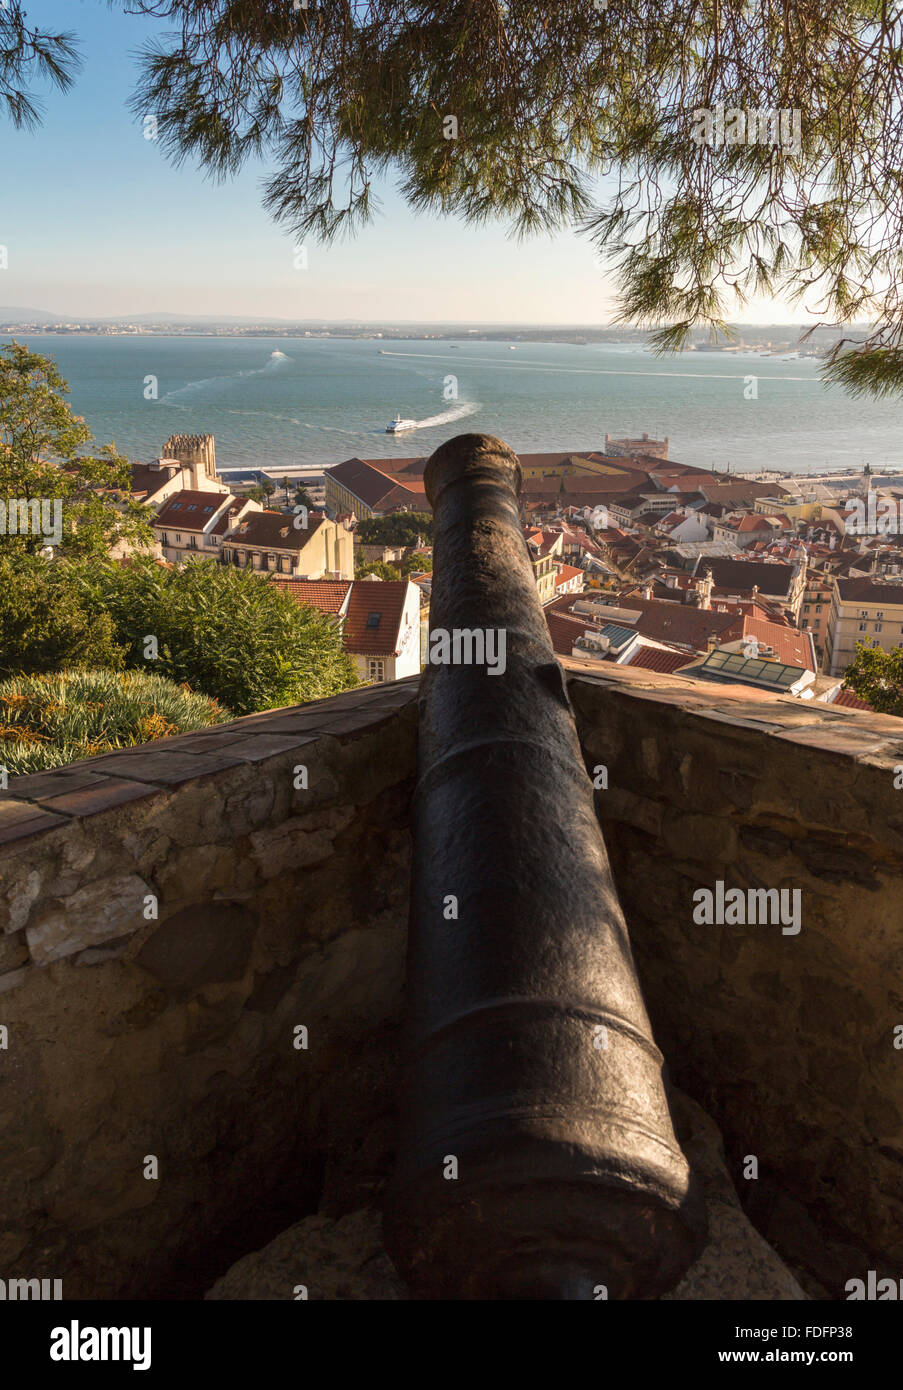 Lisbon, Portugal.  Cannon on the Castle of Saint George pointing towards boats crossing the Tejo river. - Stock Image